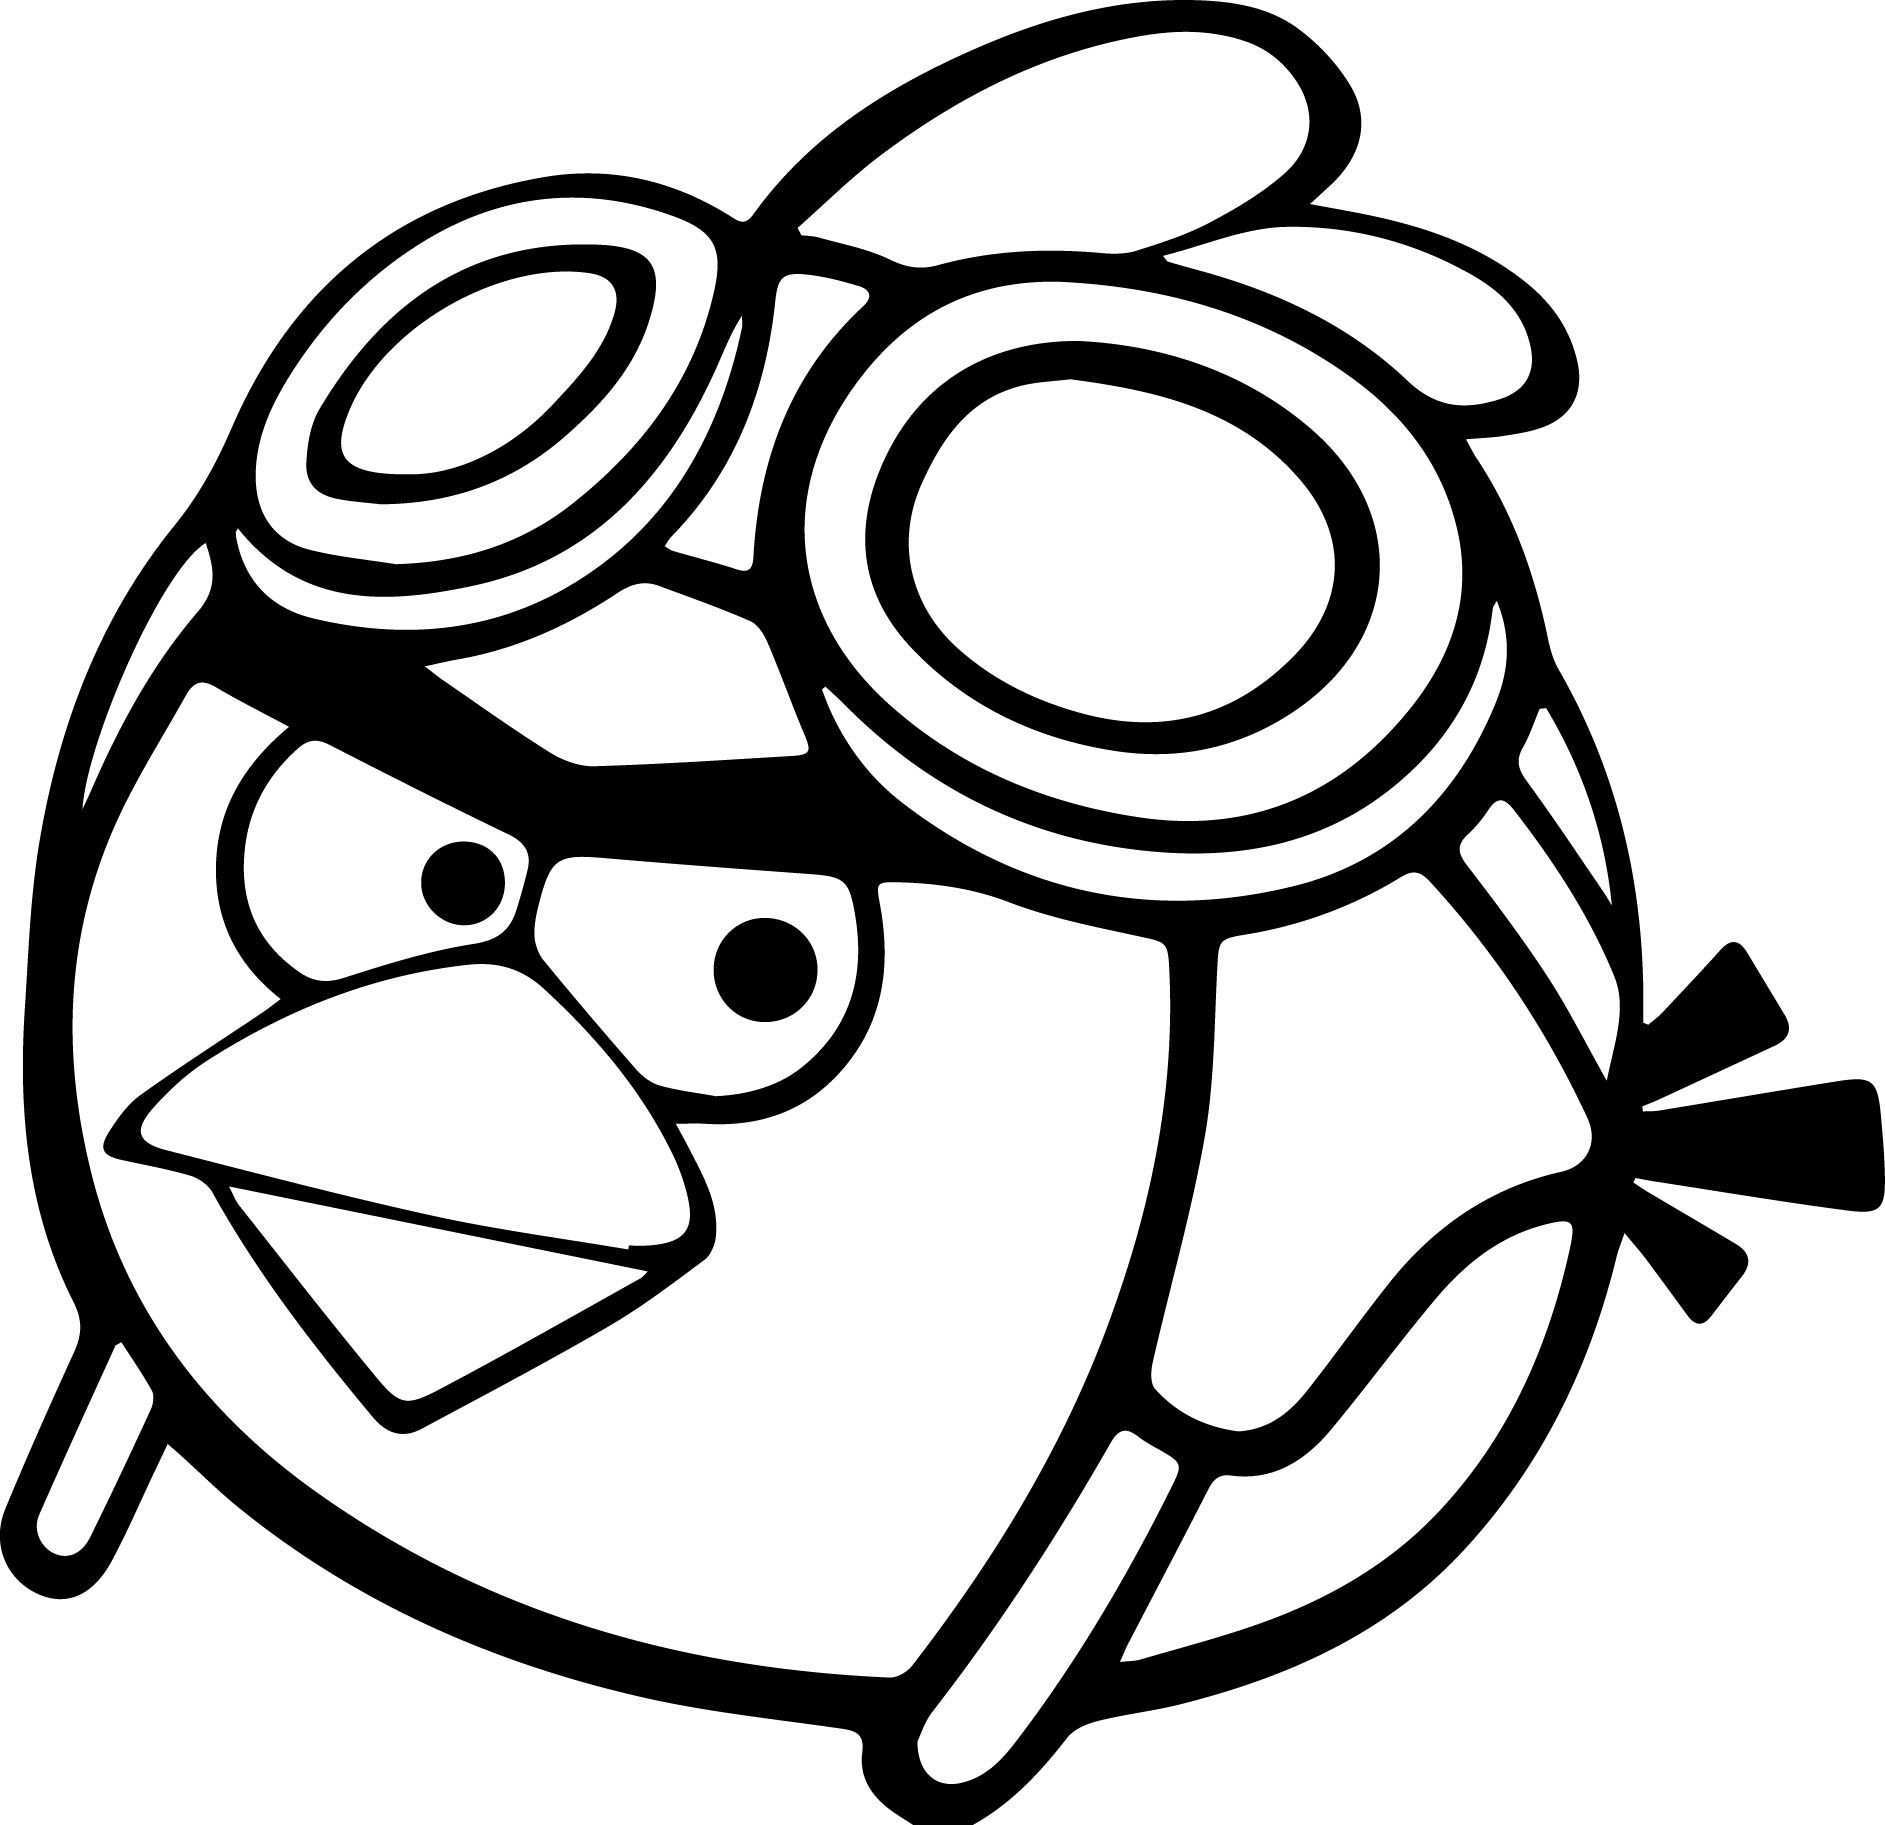 Cool Pilot Angry Birds Coloring Page Bird Coloring Pages Coloring Pages Halloween Coloring Pages